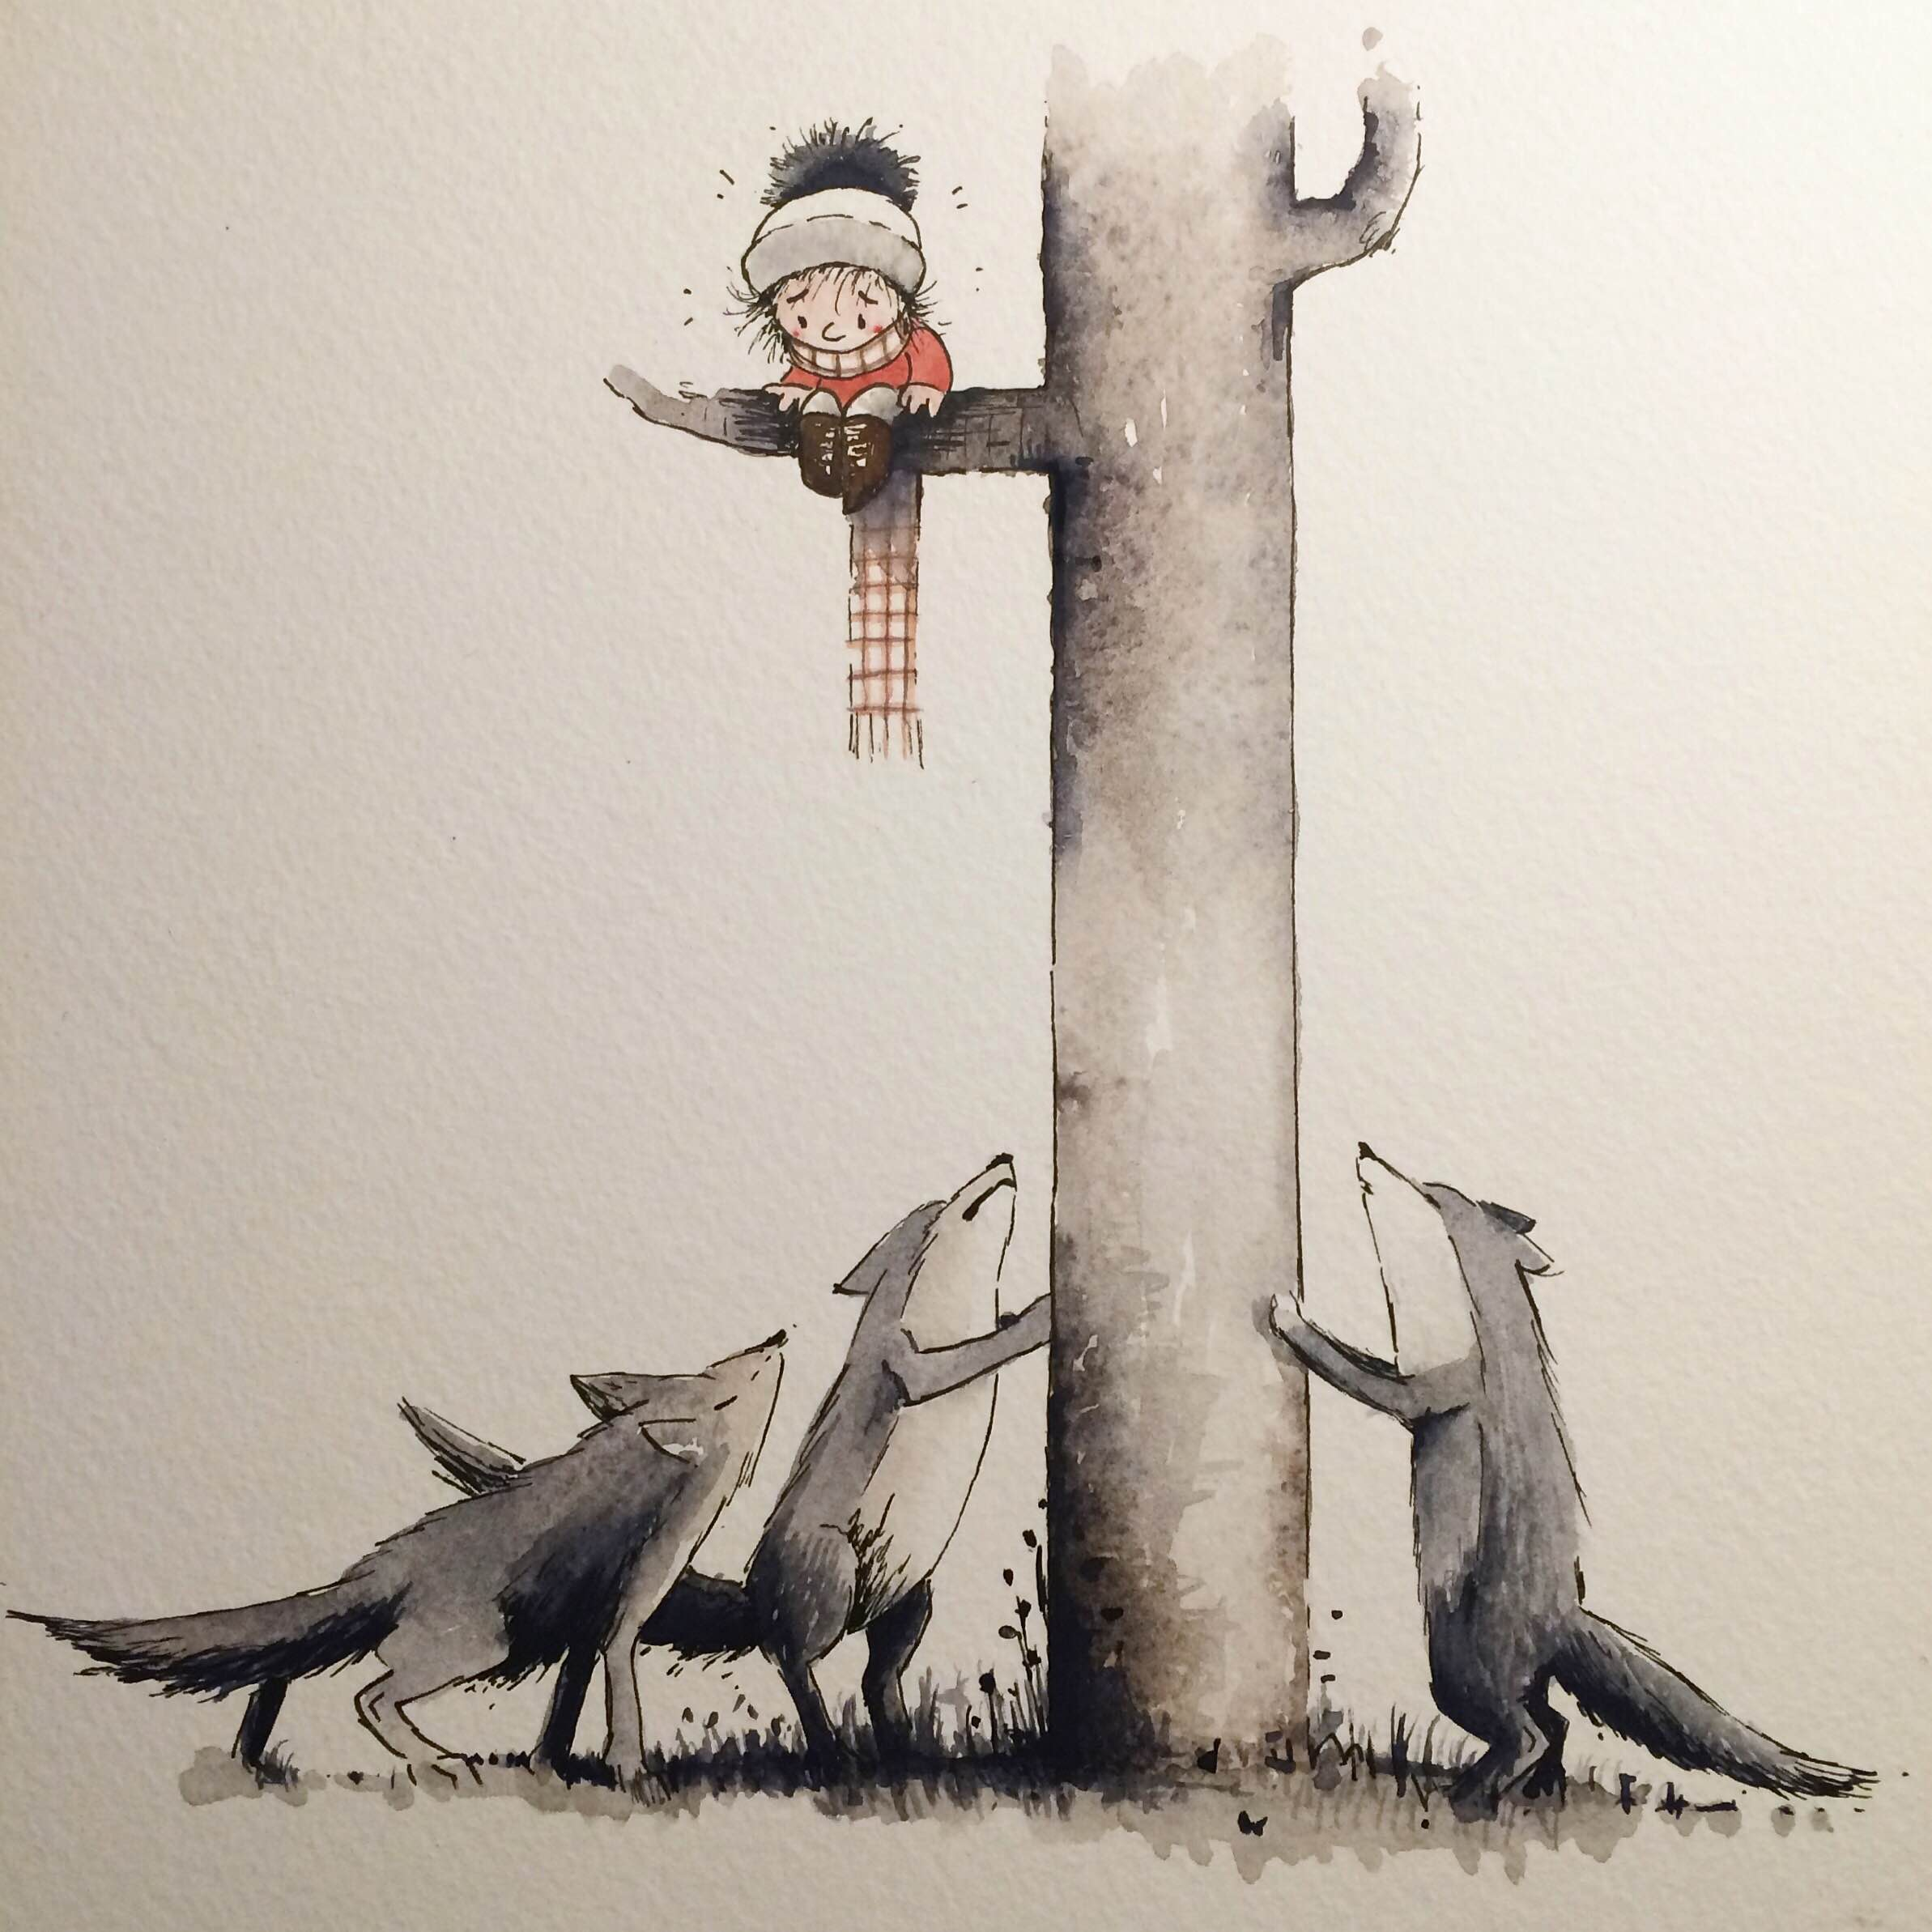 Doodlewash by Luke Scriven - watercolor sketch and children's illustration of boy run up a tree by wolves